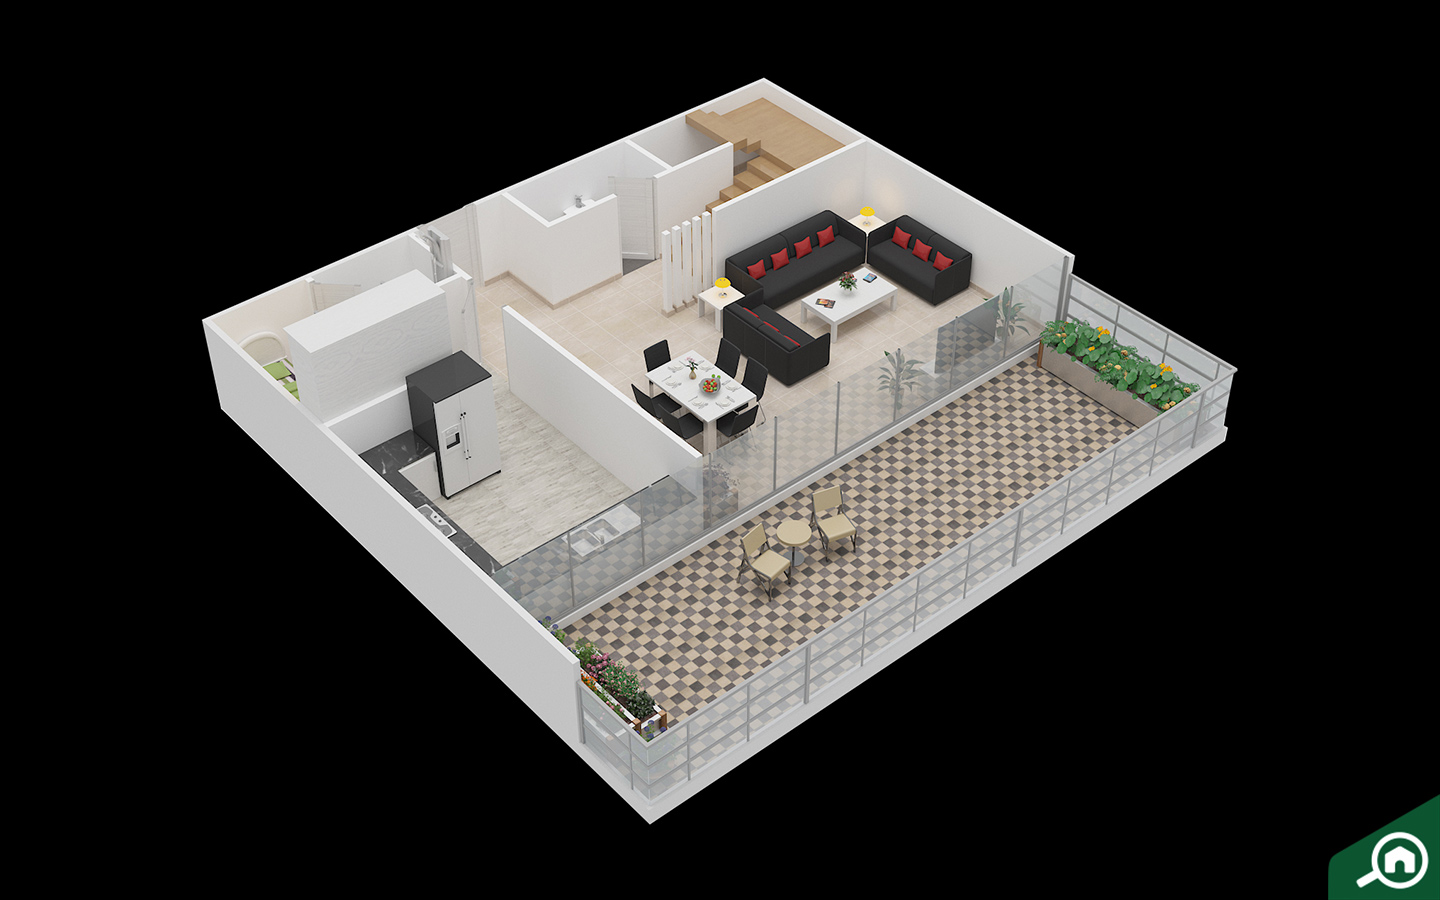 2D and 3D floor plans on bayut.com